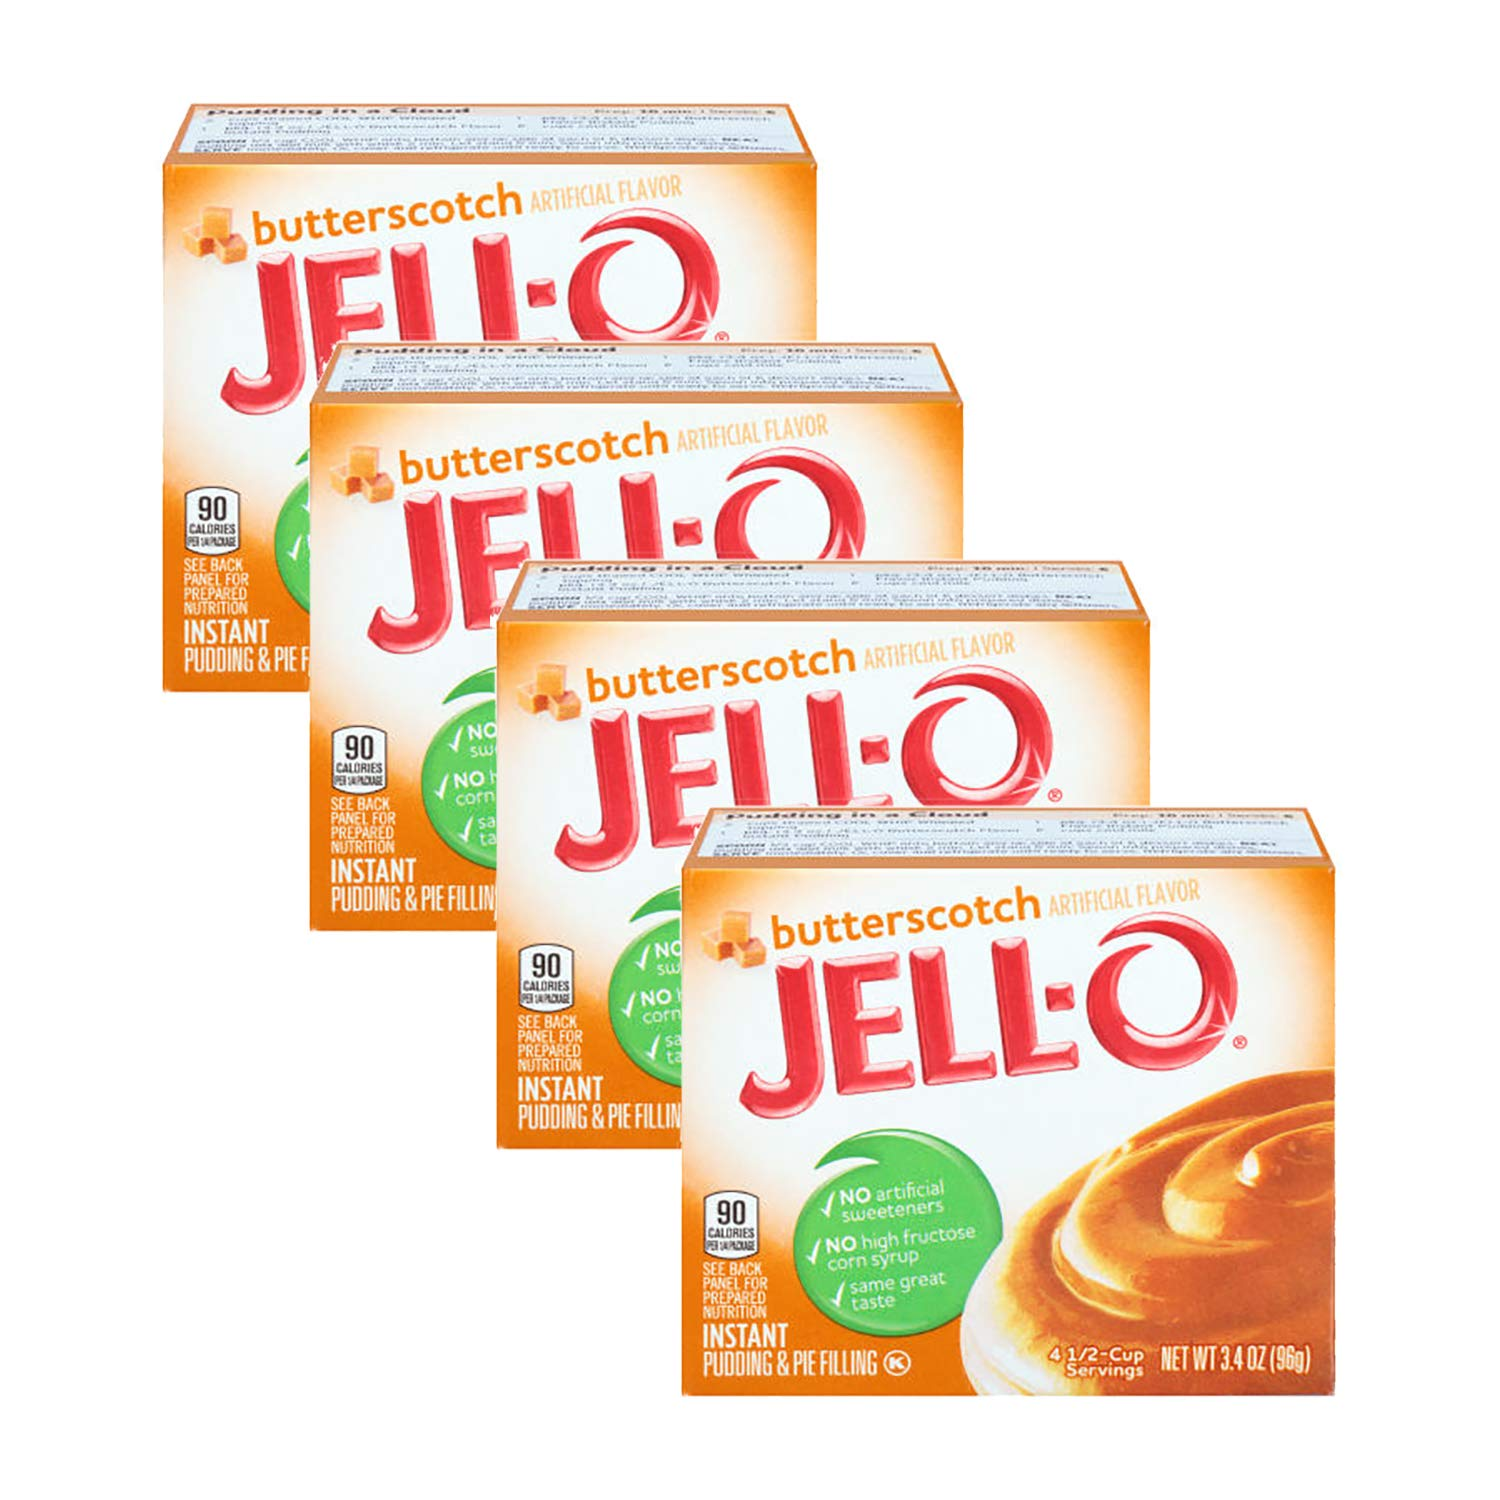 jello instant pudding pie filling instructions 5.9 oz